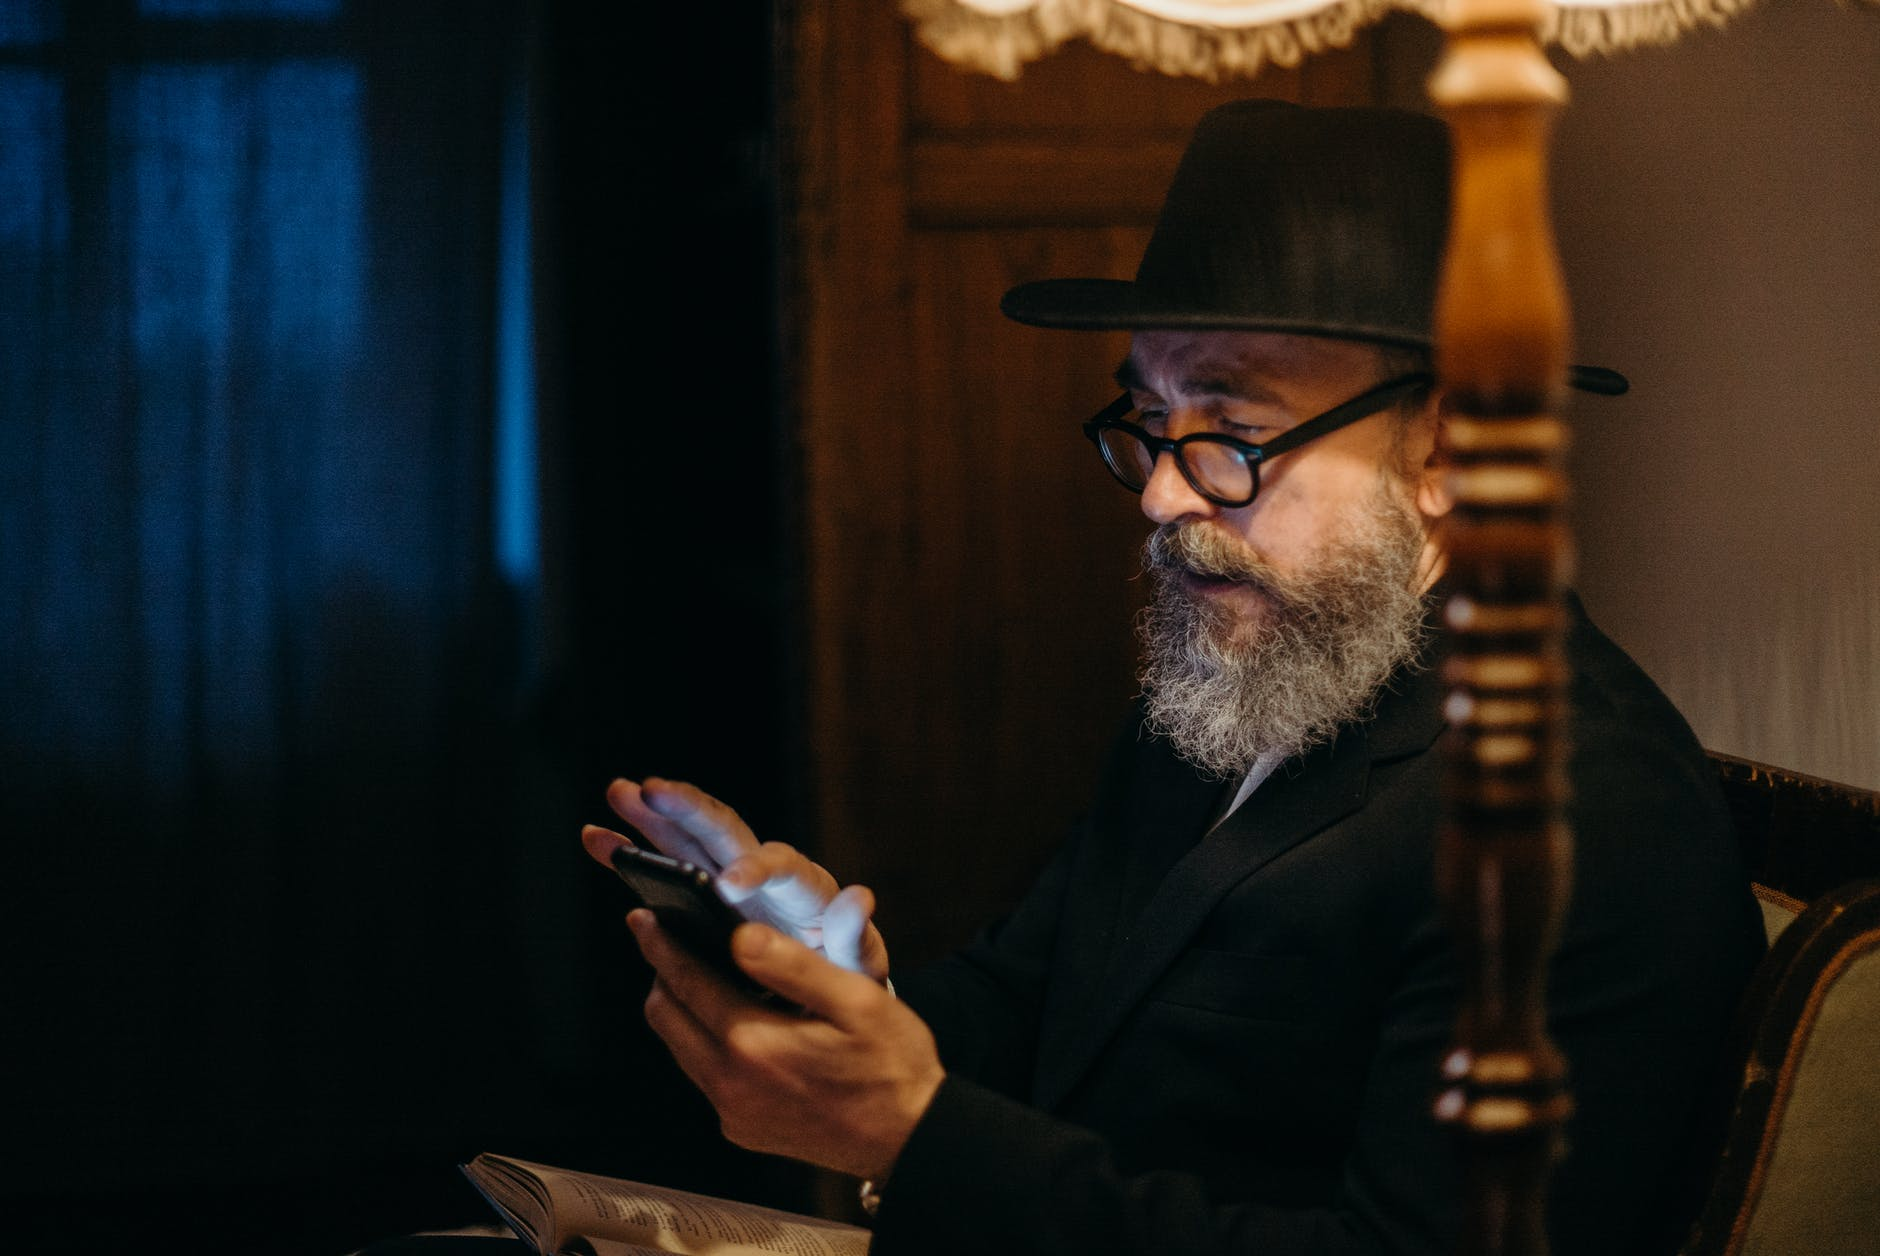 A gentle man with bare wearing a black hat is sitting, checking his mobile phone.